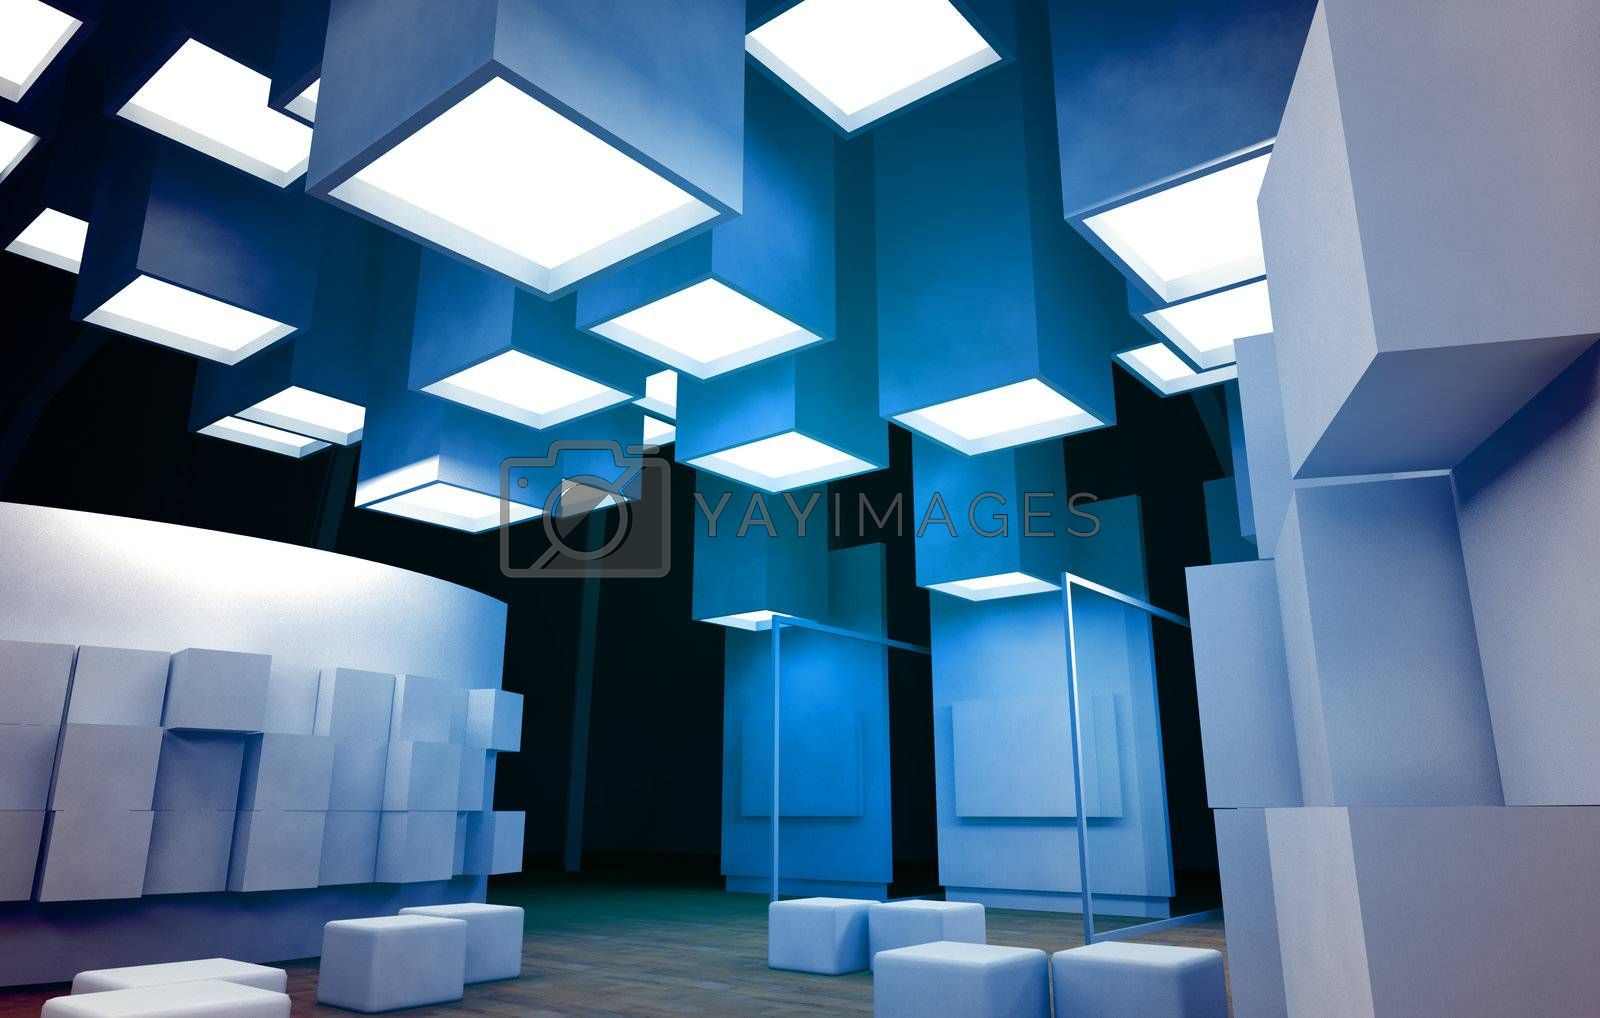 Art gallery with blank frames, modern building, conceptual archi by FernandoCortes